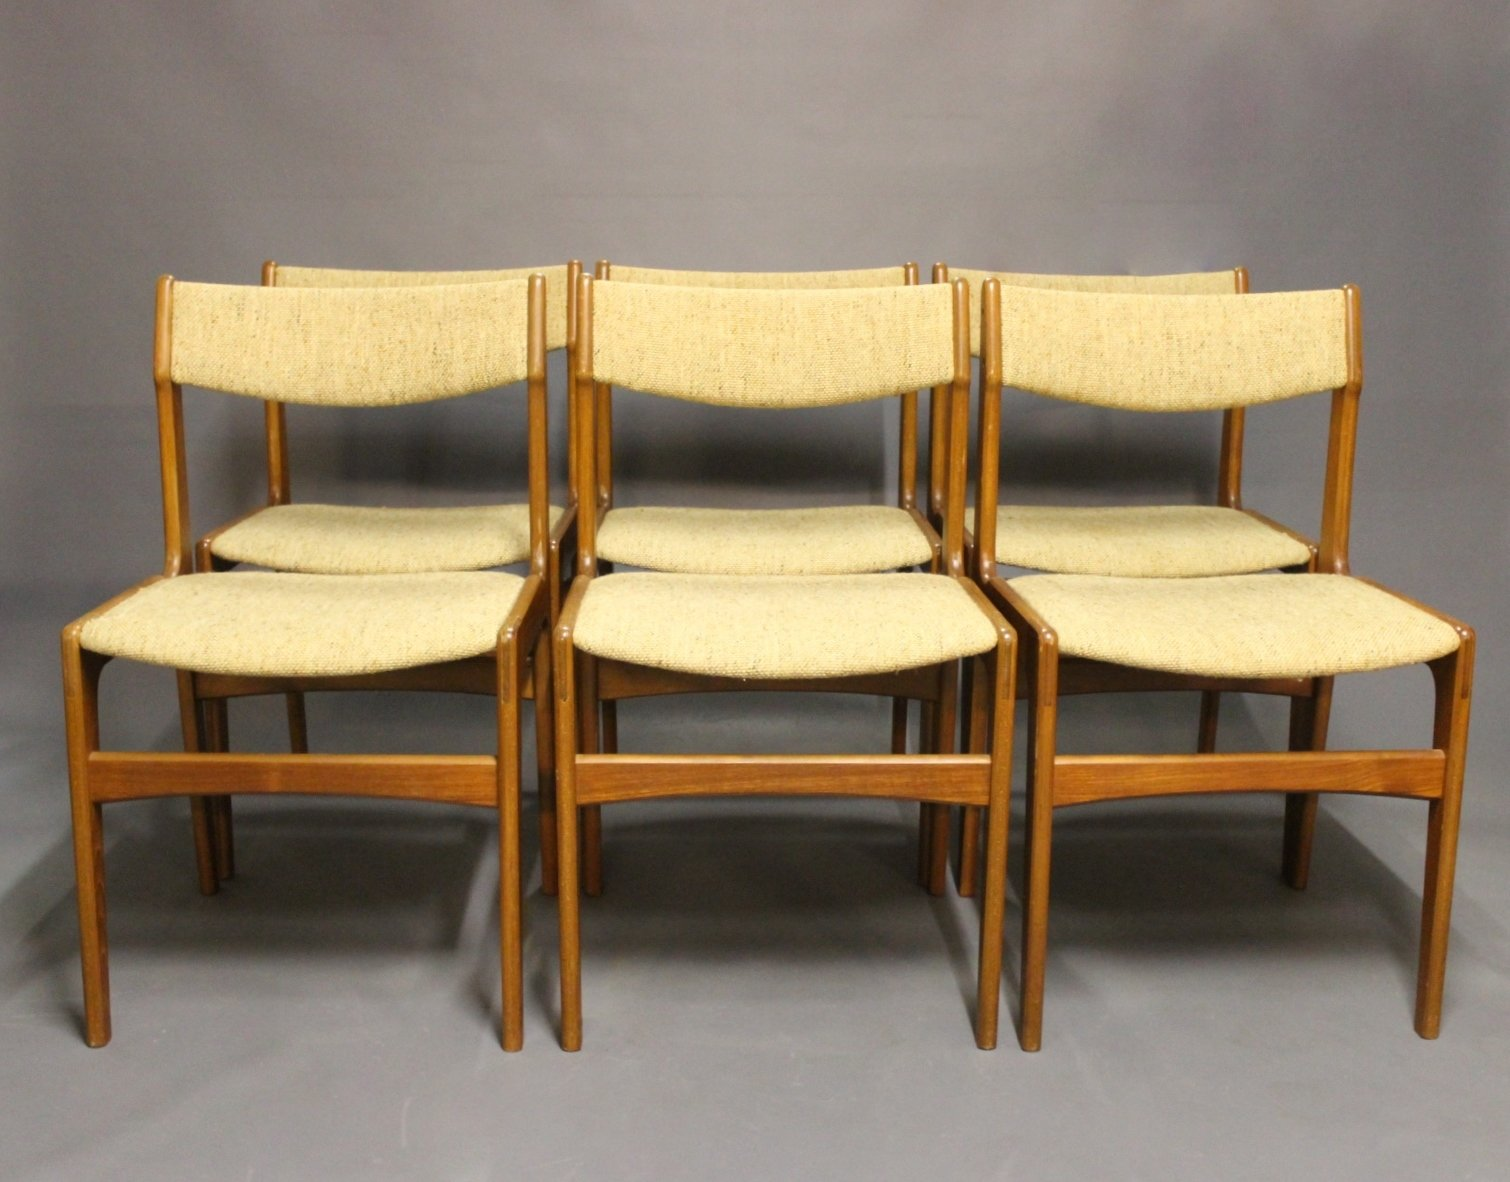 Lovely Teak Dining Chairs By Erik Buch, 1960s, Set Of 6